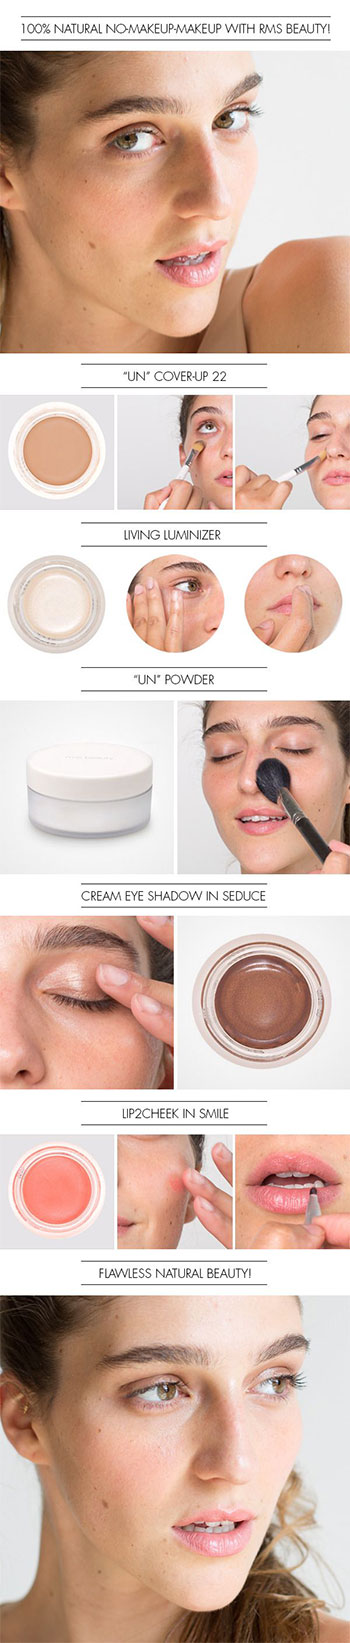 15-Easy-Natural-Make-Up-Tutorials-2014-For-Beginners-Learners-3